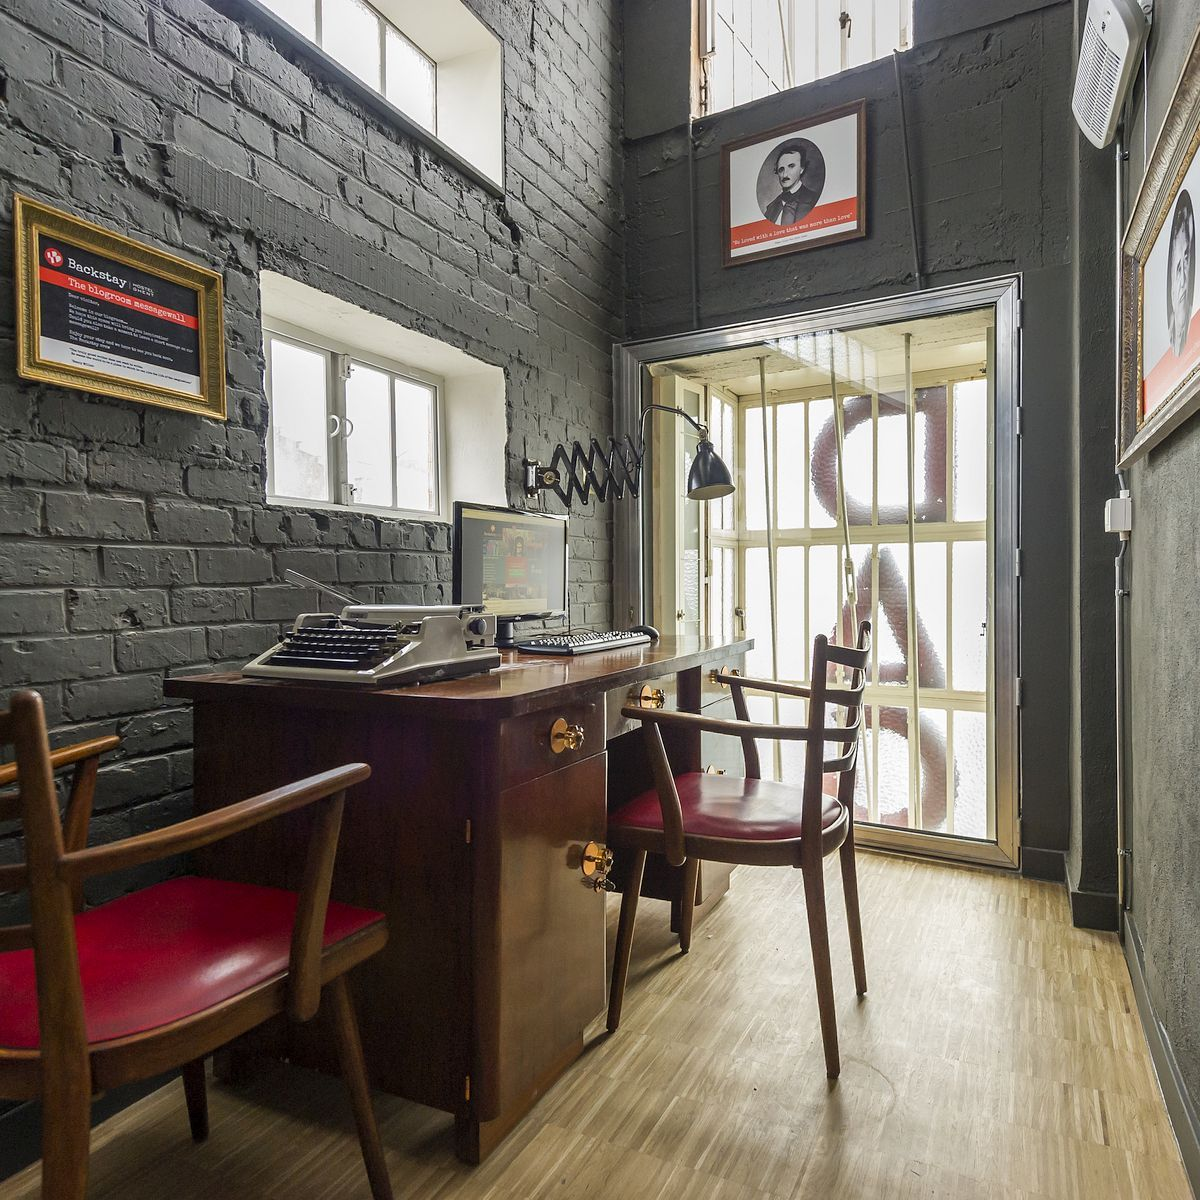 Backstay Hostel Backstay Hostel Ghent Fittingly Located In The